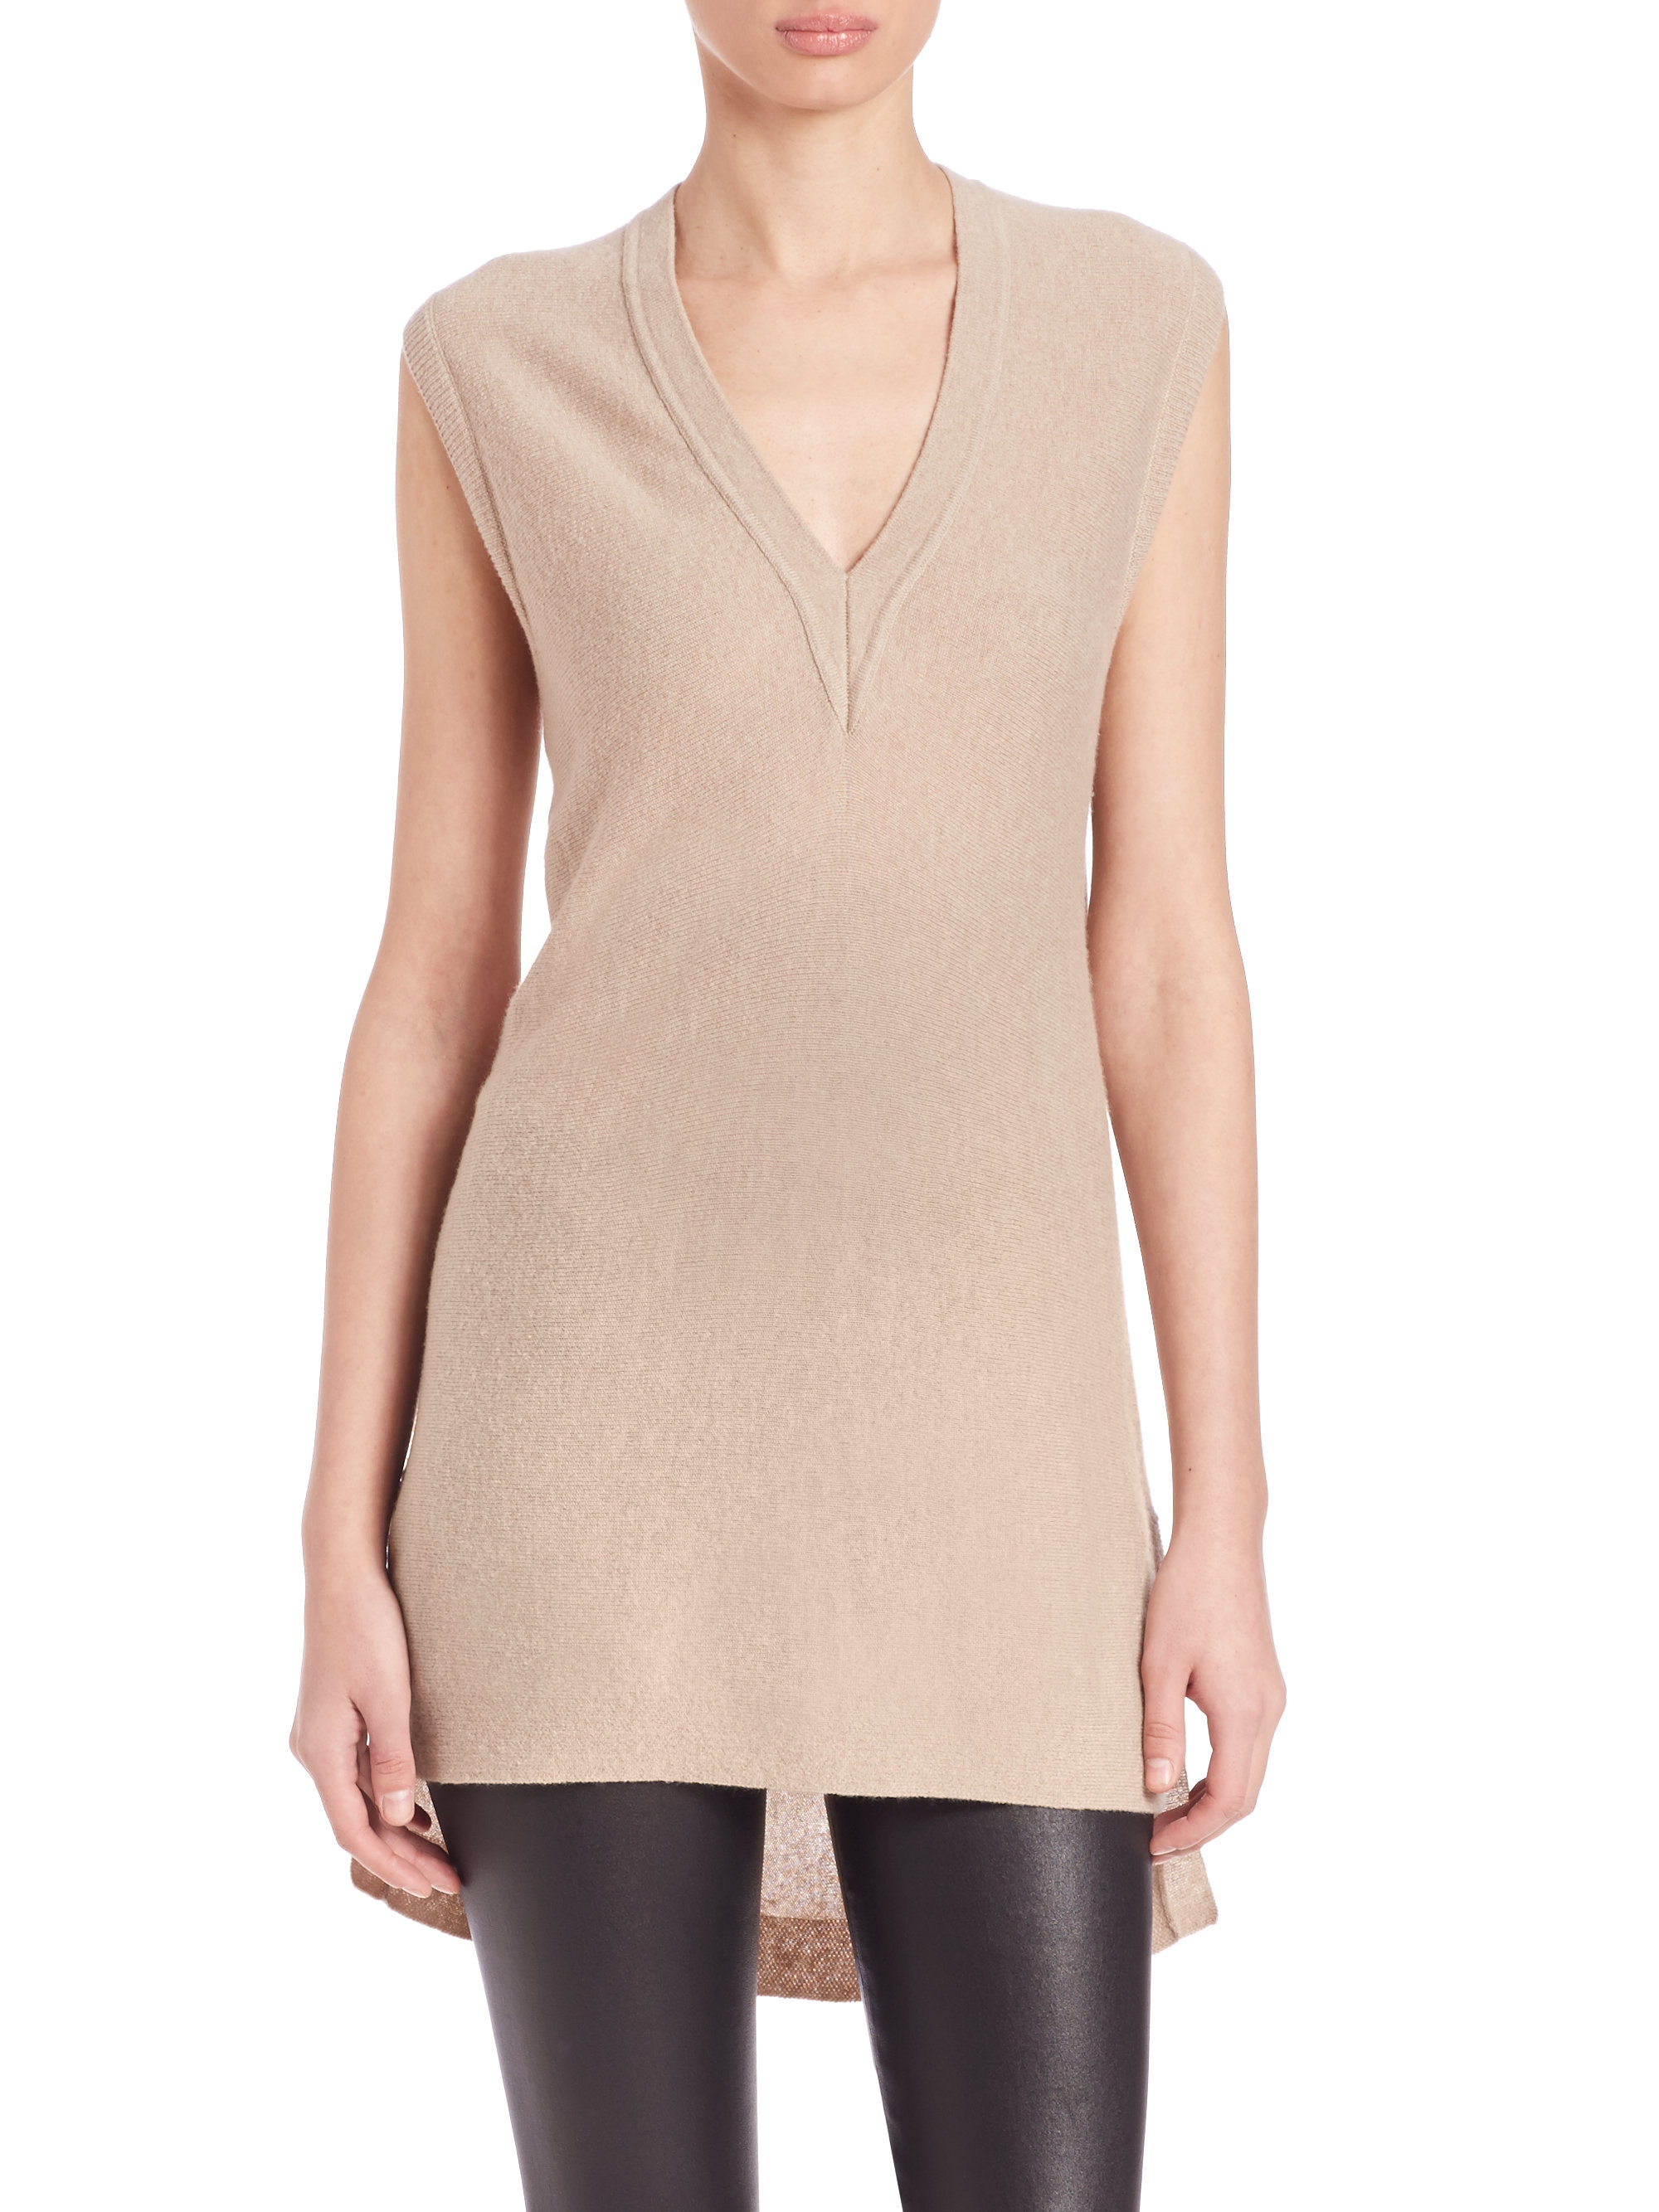 Vince Long Sleeveless Cashmere Sweater in Natural | Lyst